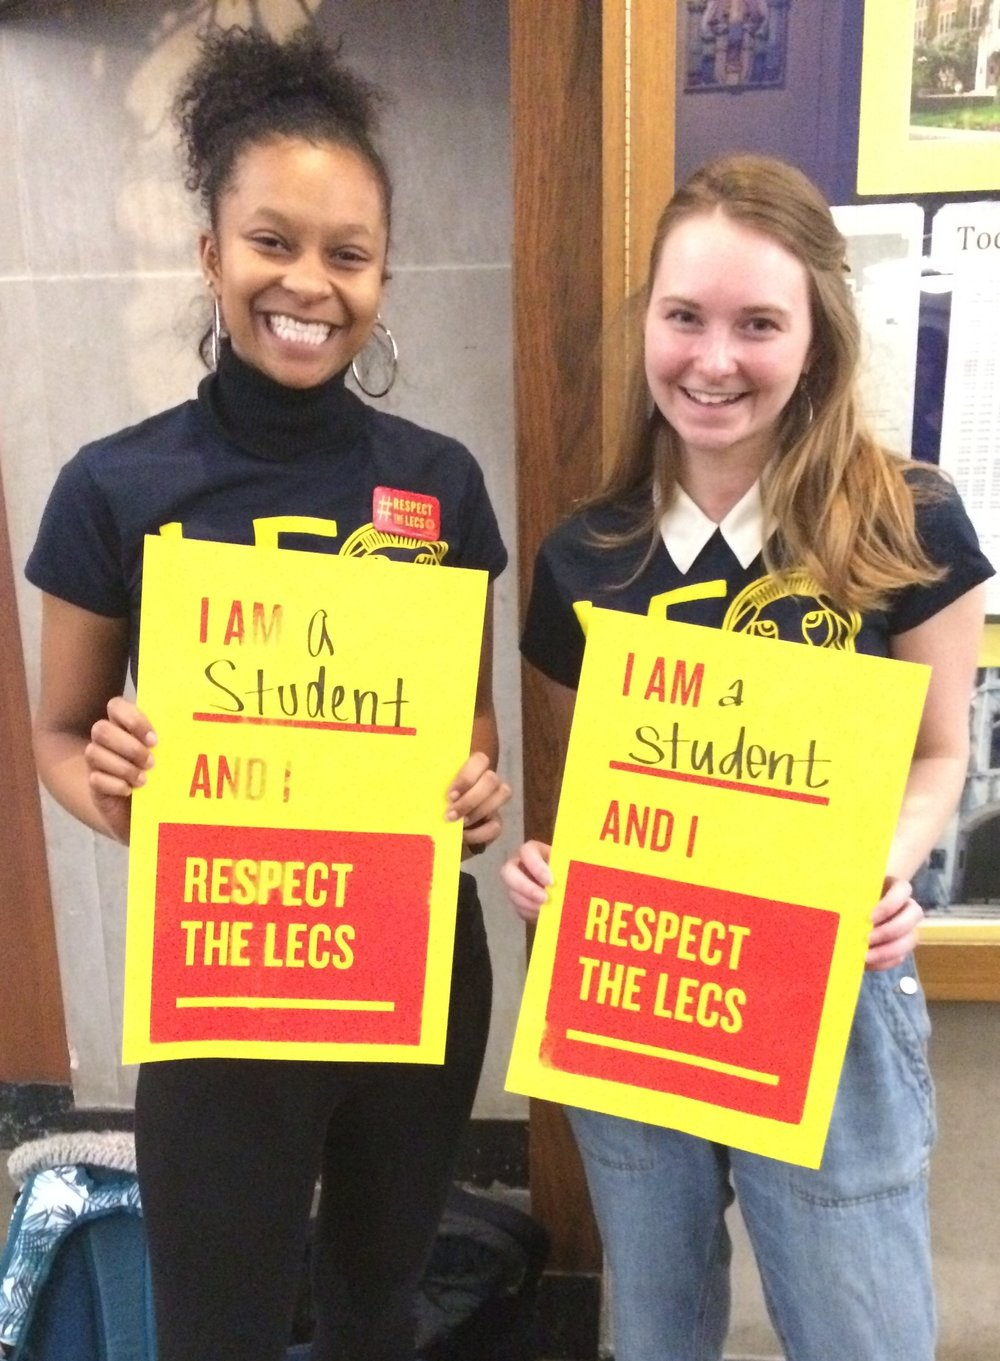 Ann Arbor student allies at a University Board of Regents meeting